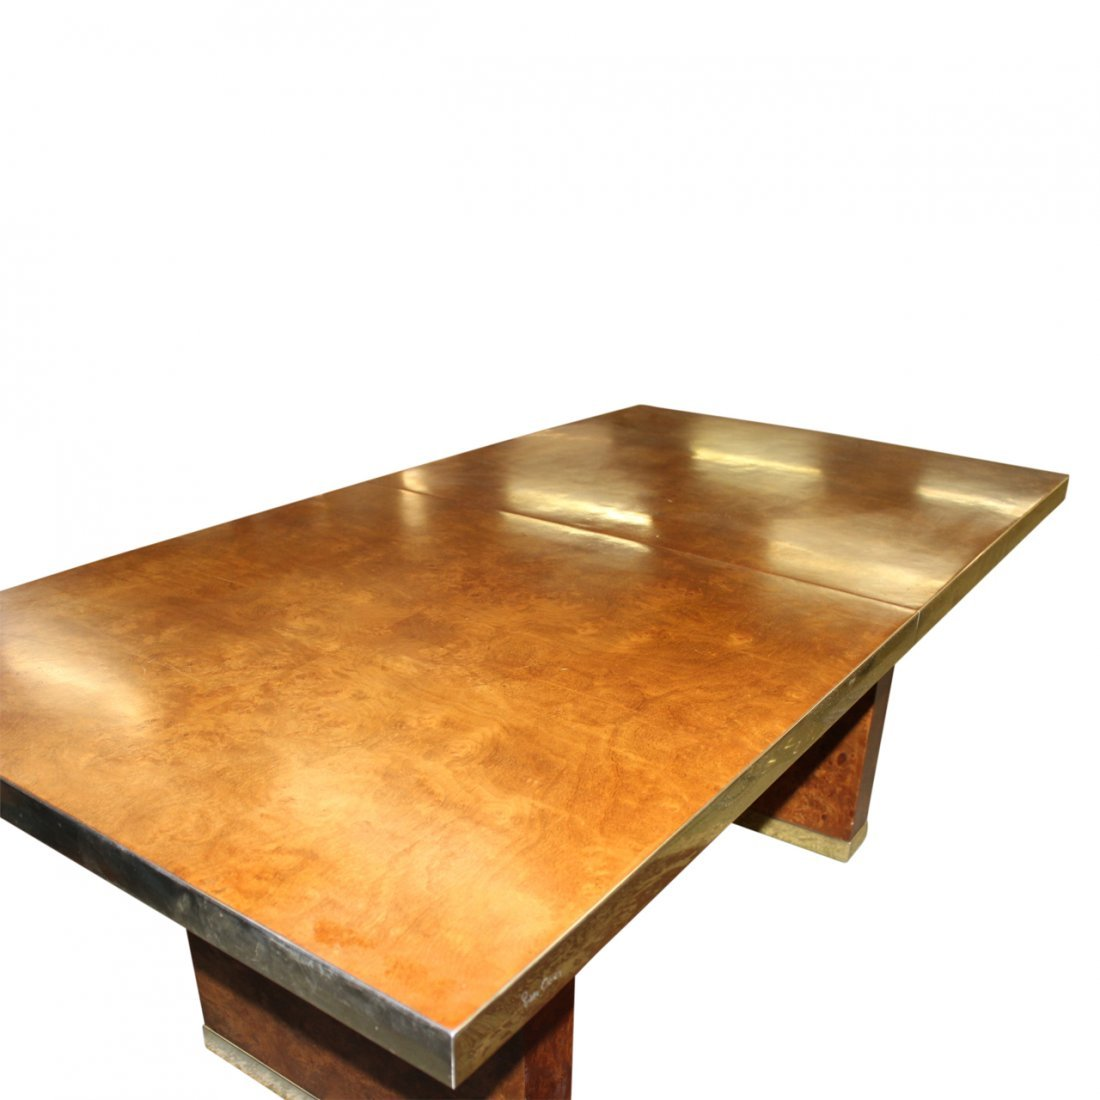 Pierre Cardin Burl Wood and Brass Dining Table - 3